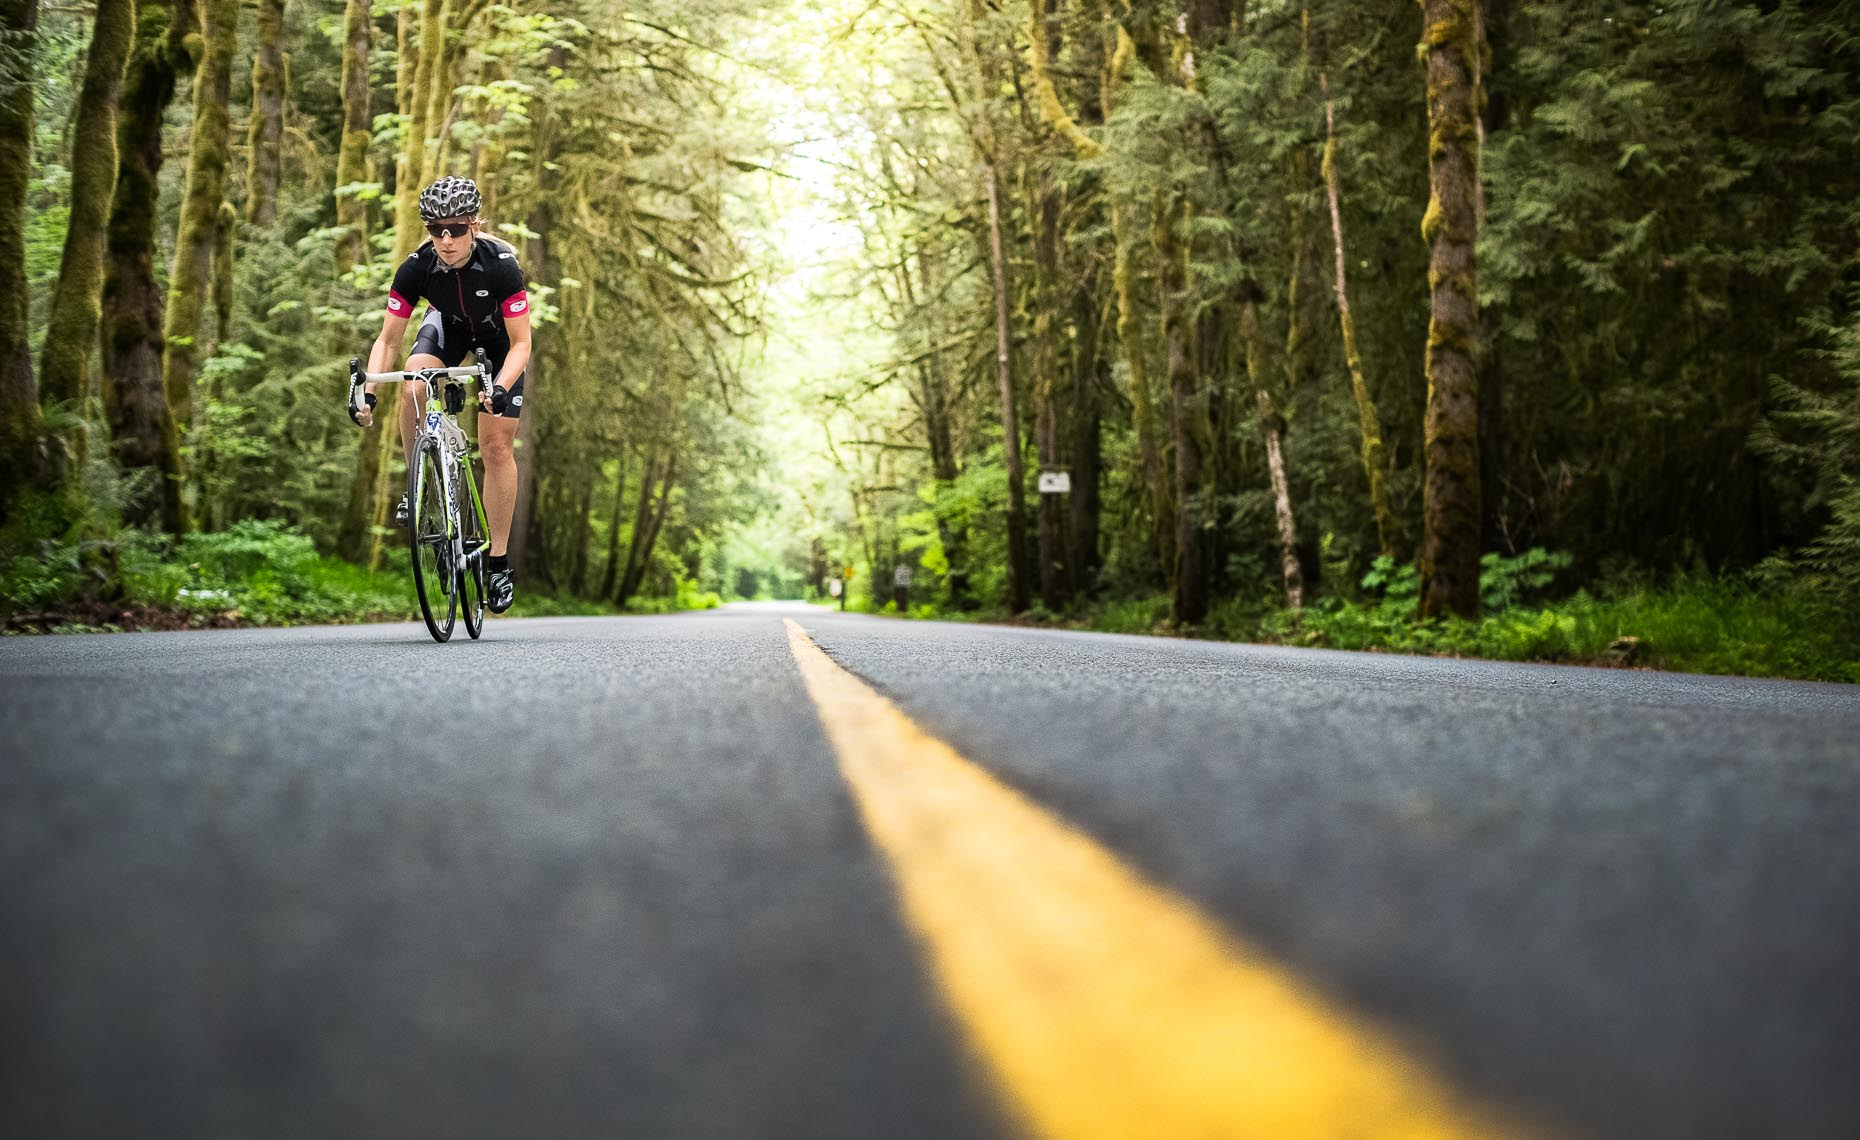 Forest road cycling photographer